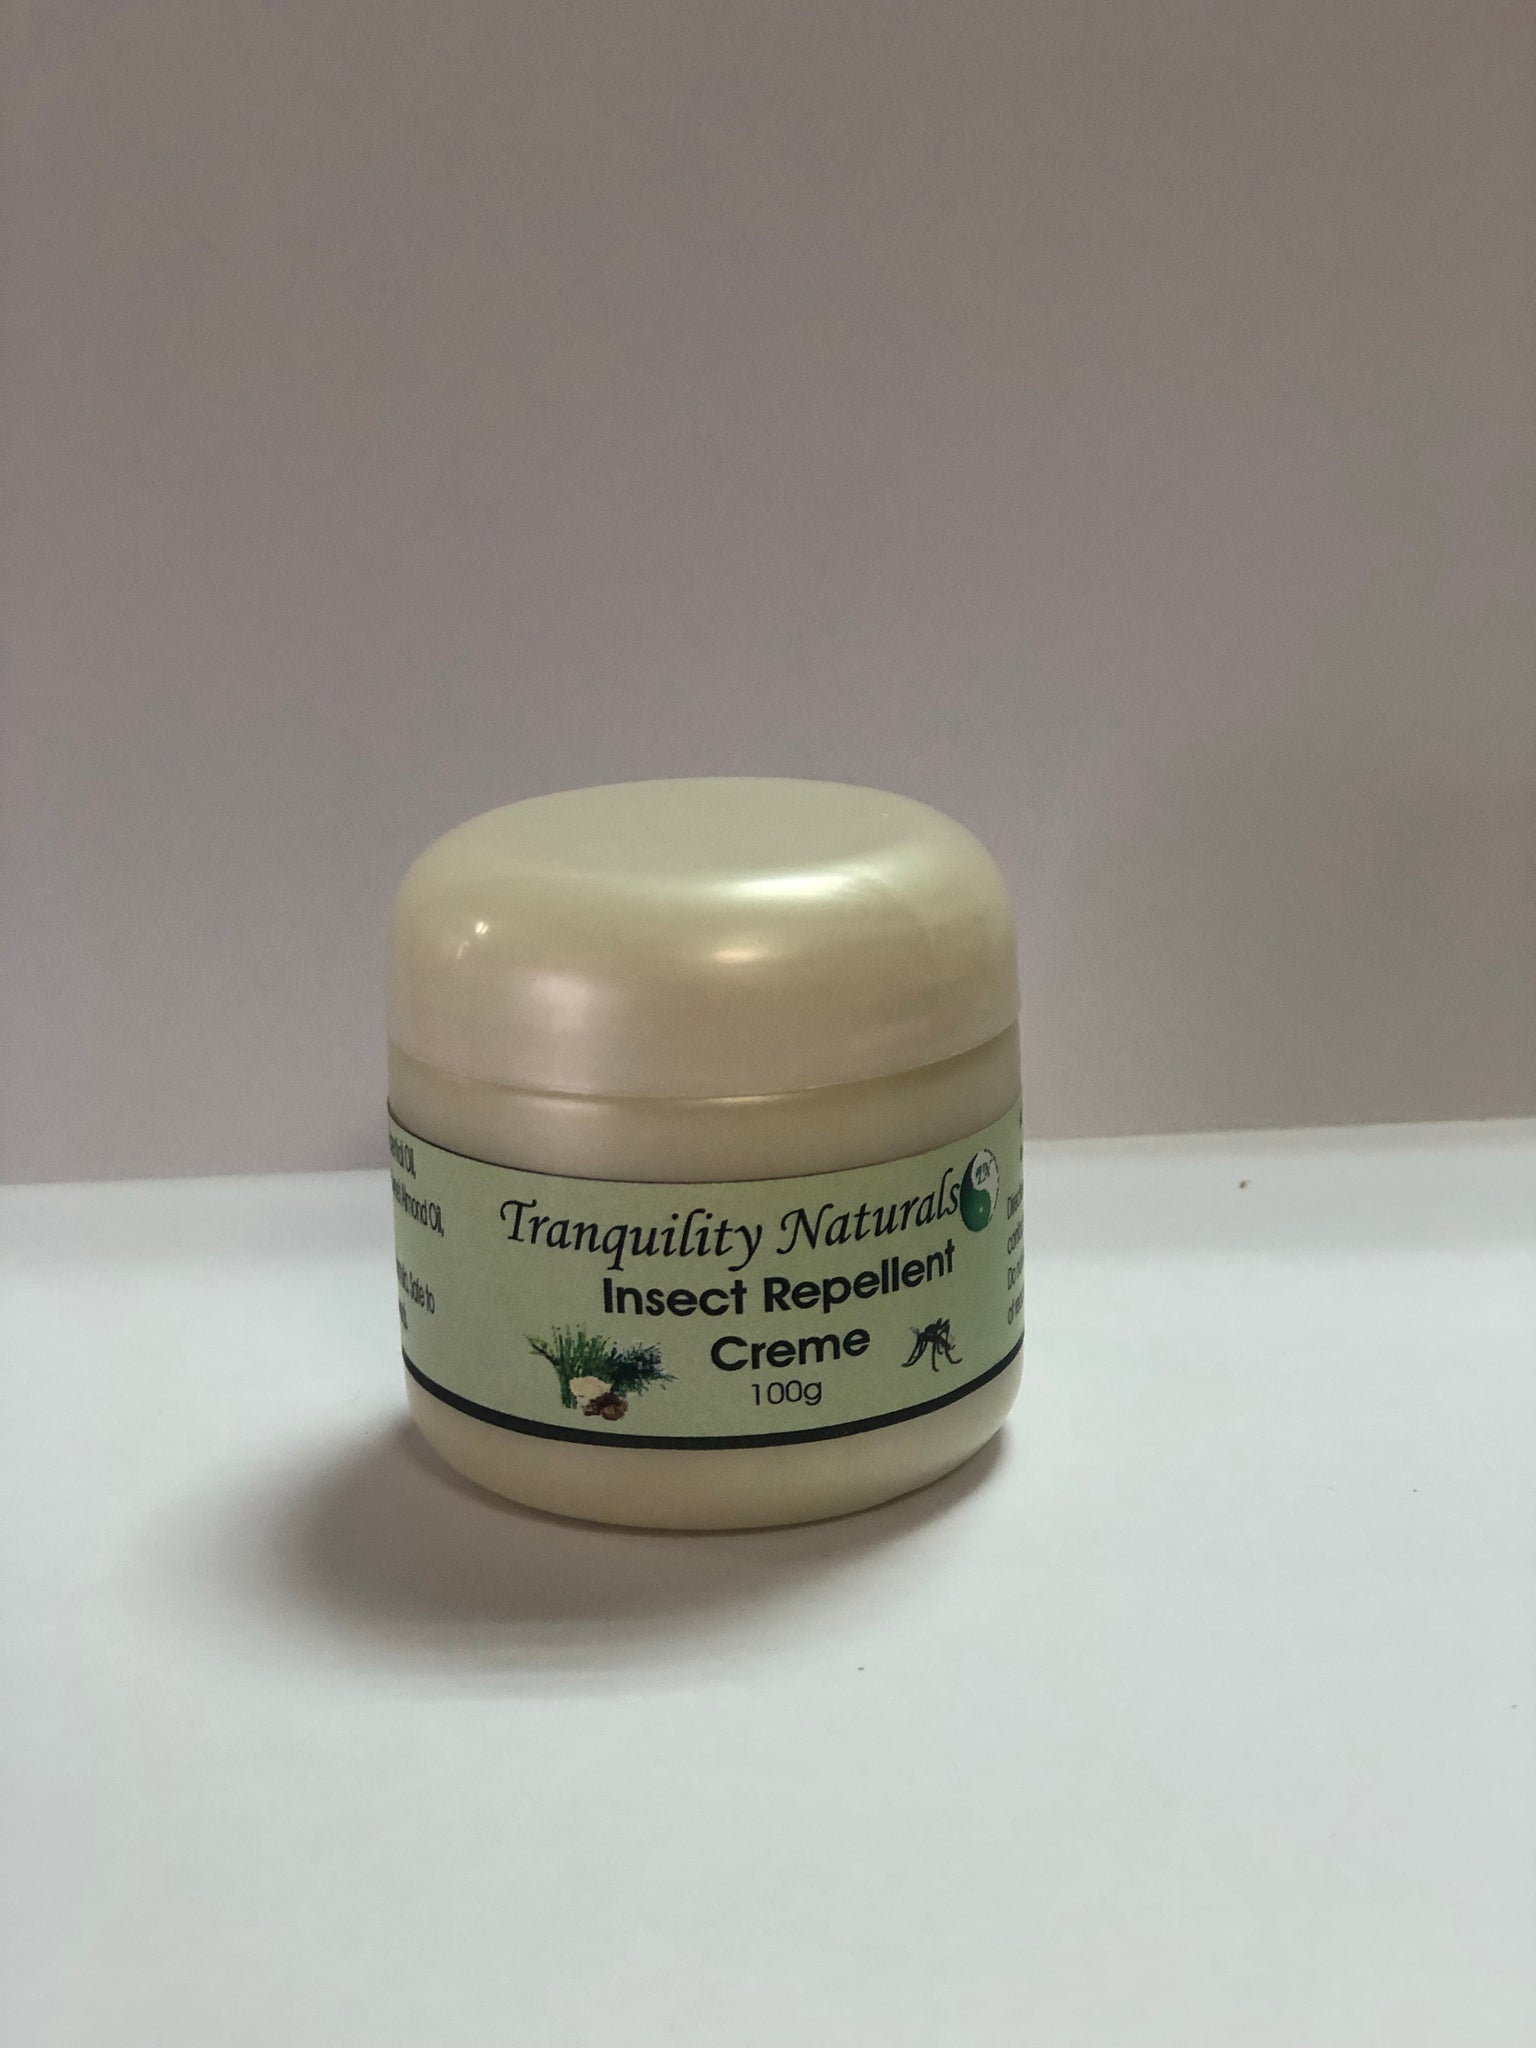 Insect Repellent Creme